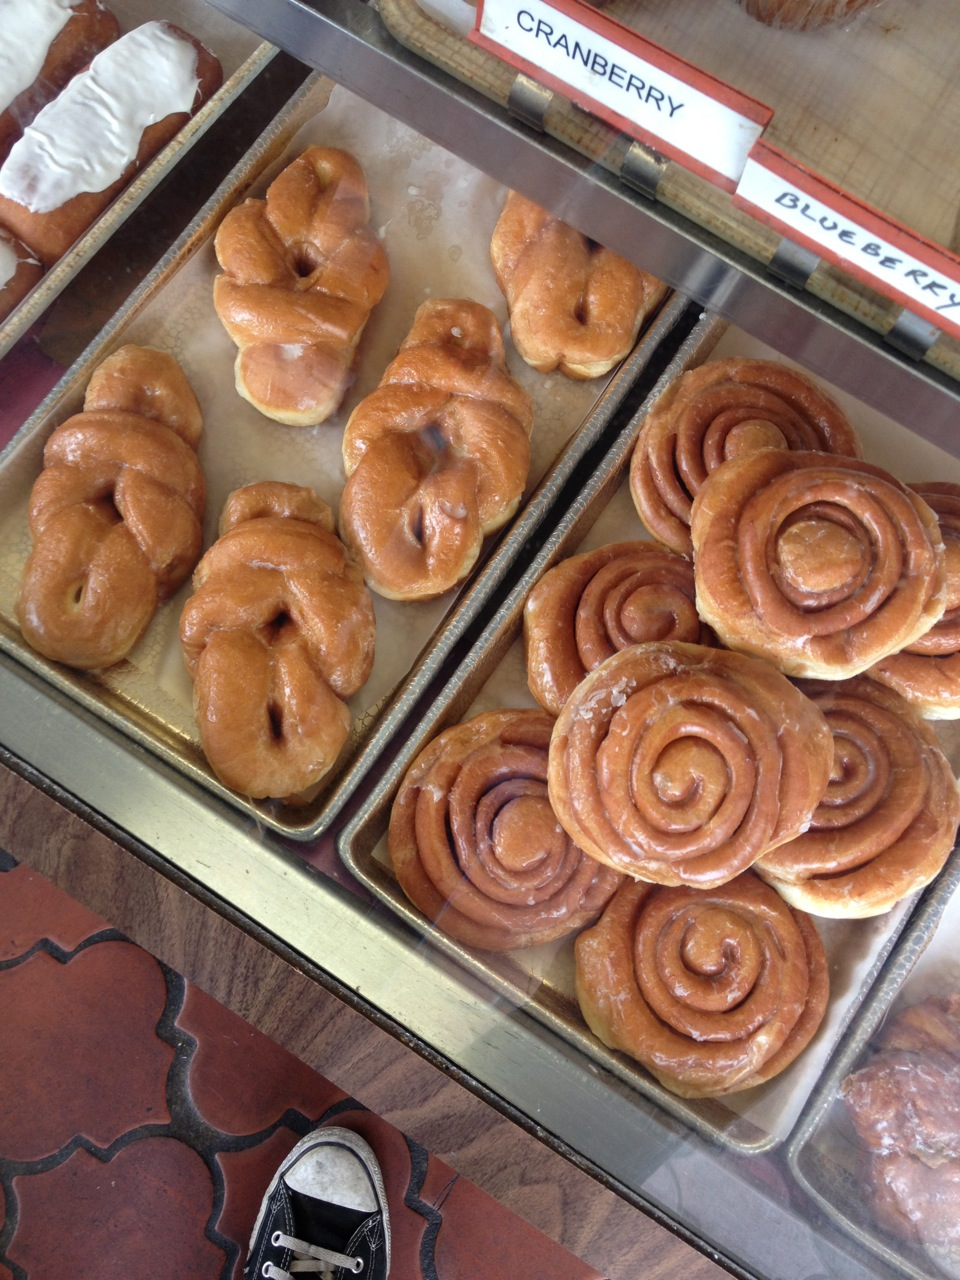 cinnamon rolls and other pastries behind glass